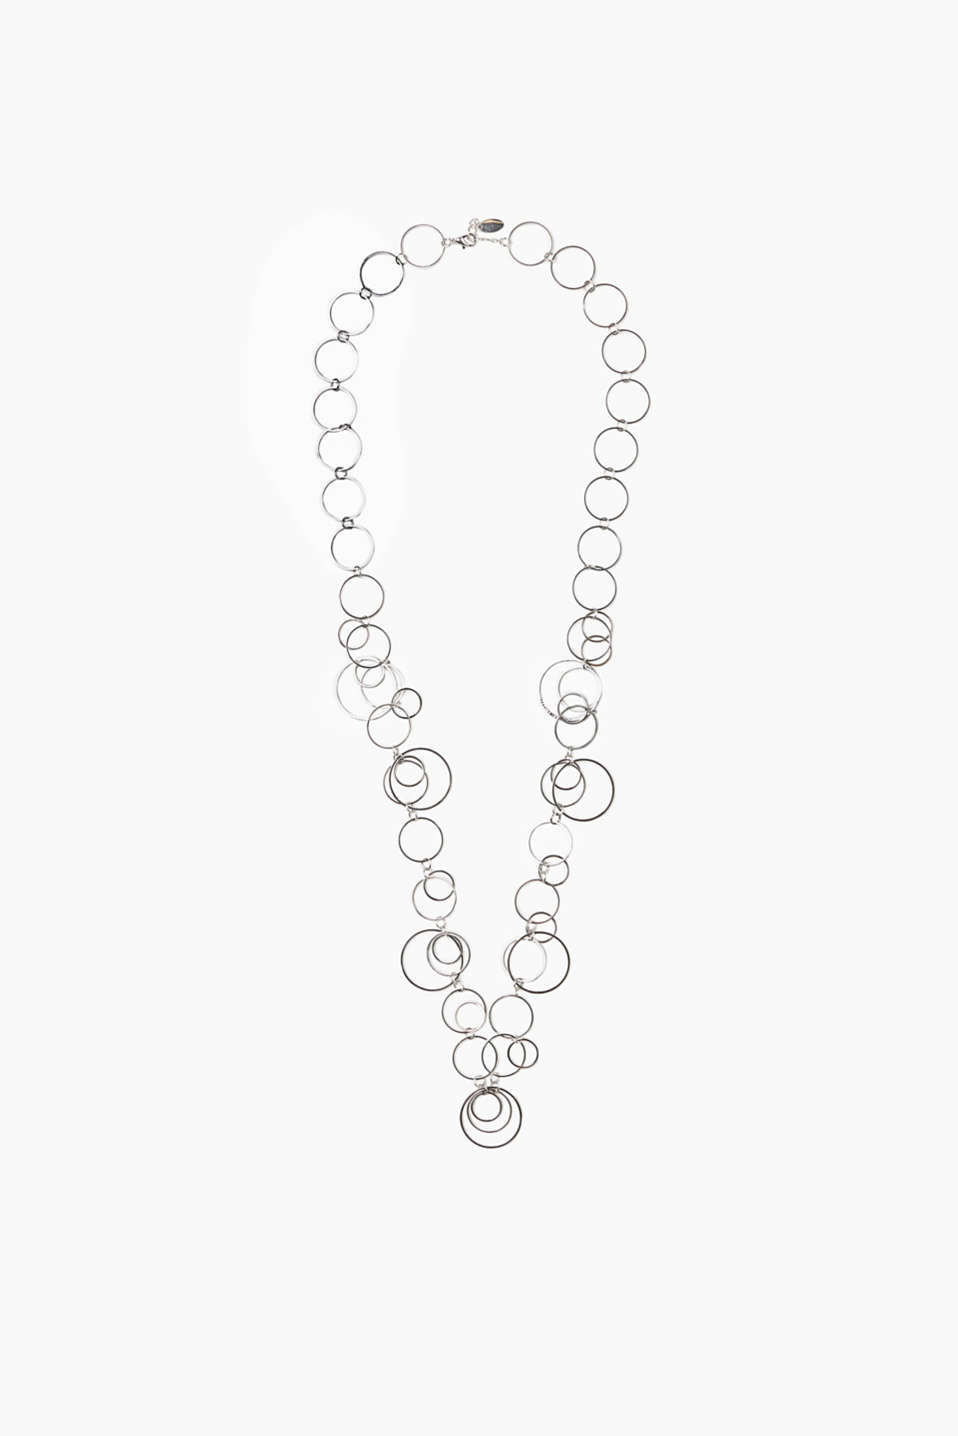 Long necklace with intertwined rings in an elegant silver tone